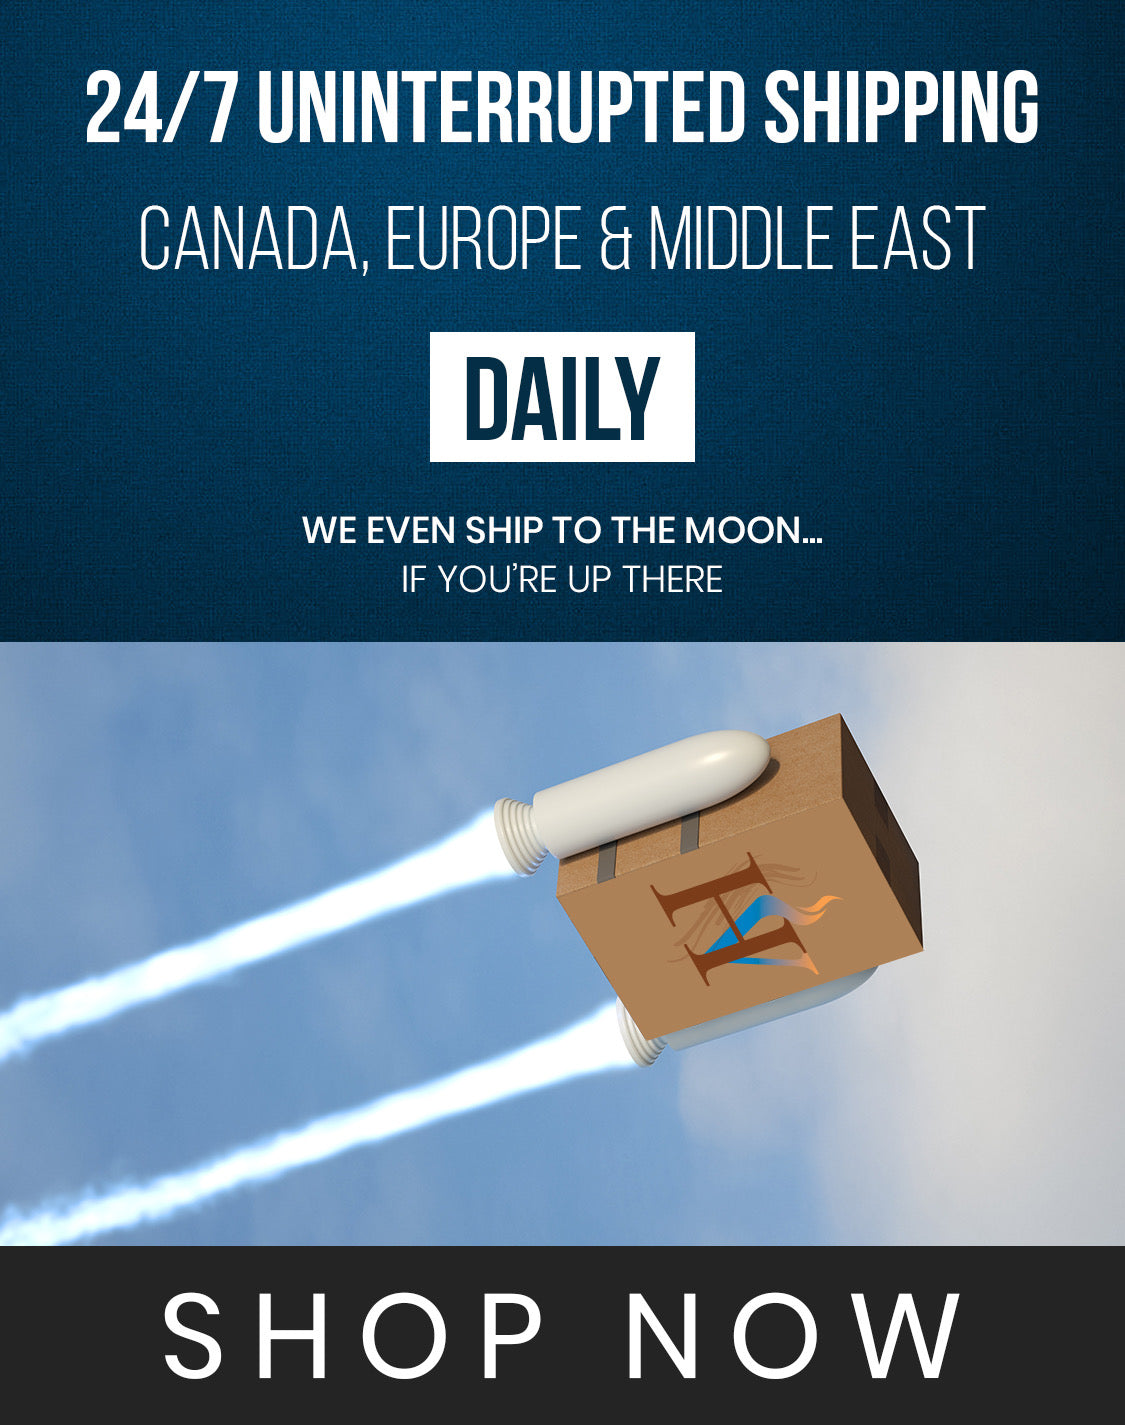 Shipping vape products in Canada, Europe and Middle East